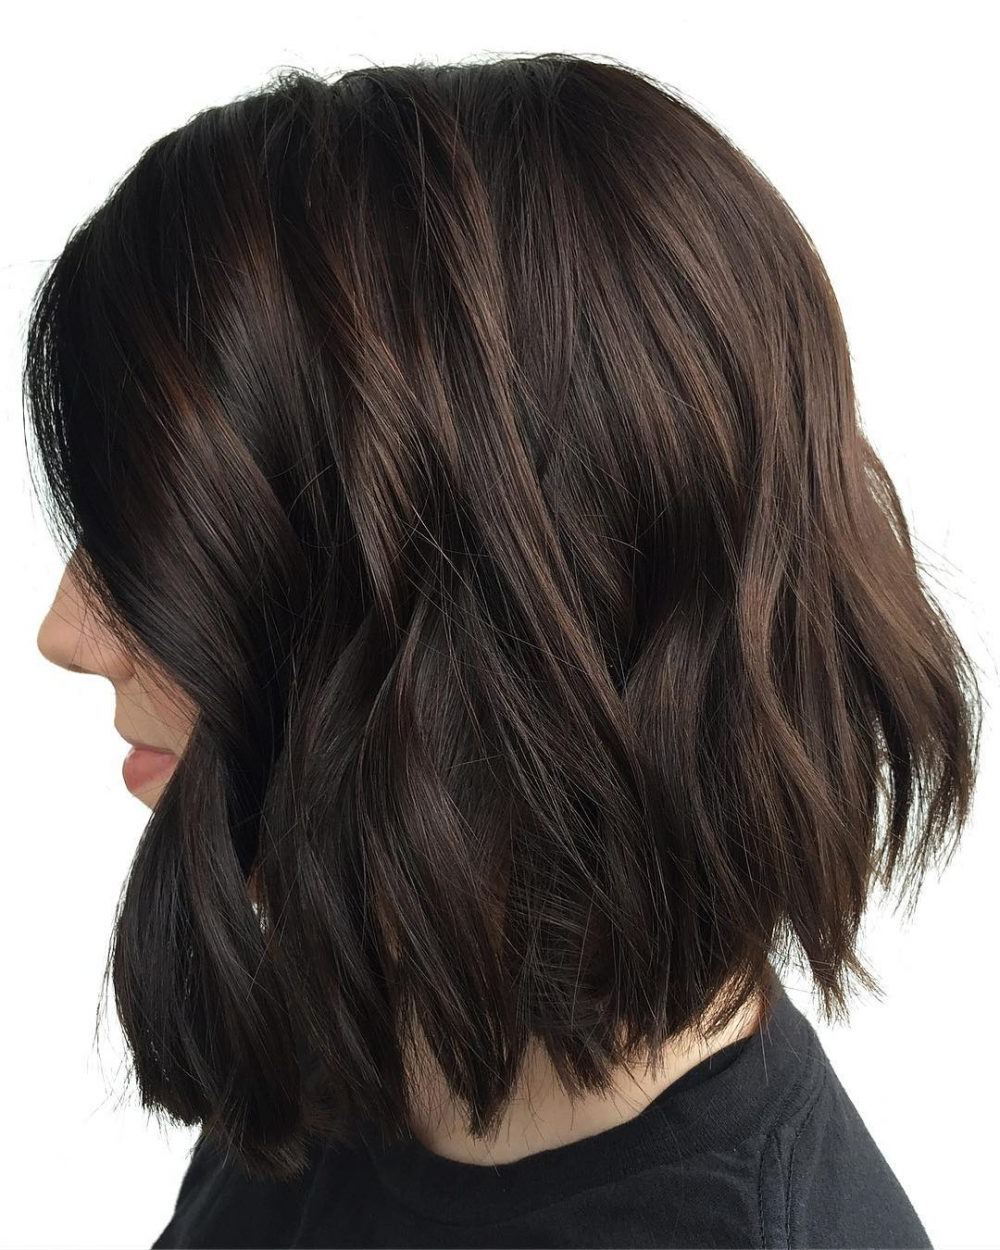 29 Flattering Dark Hair Colors For Every Skin Tone In 2018 Intended For Disheveled Burgundy Brown Bob Hairstyles (View 4 of 20)